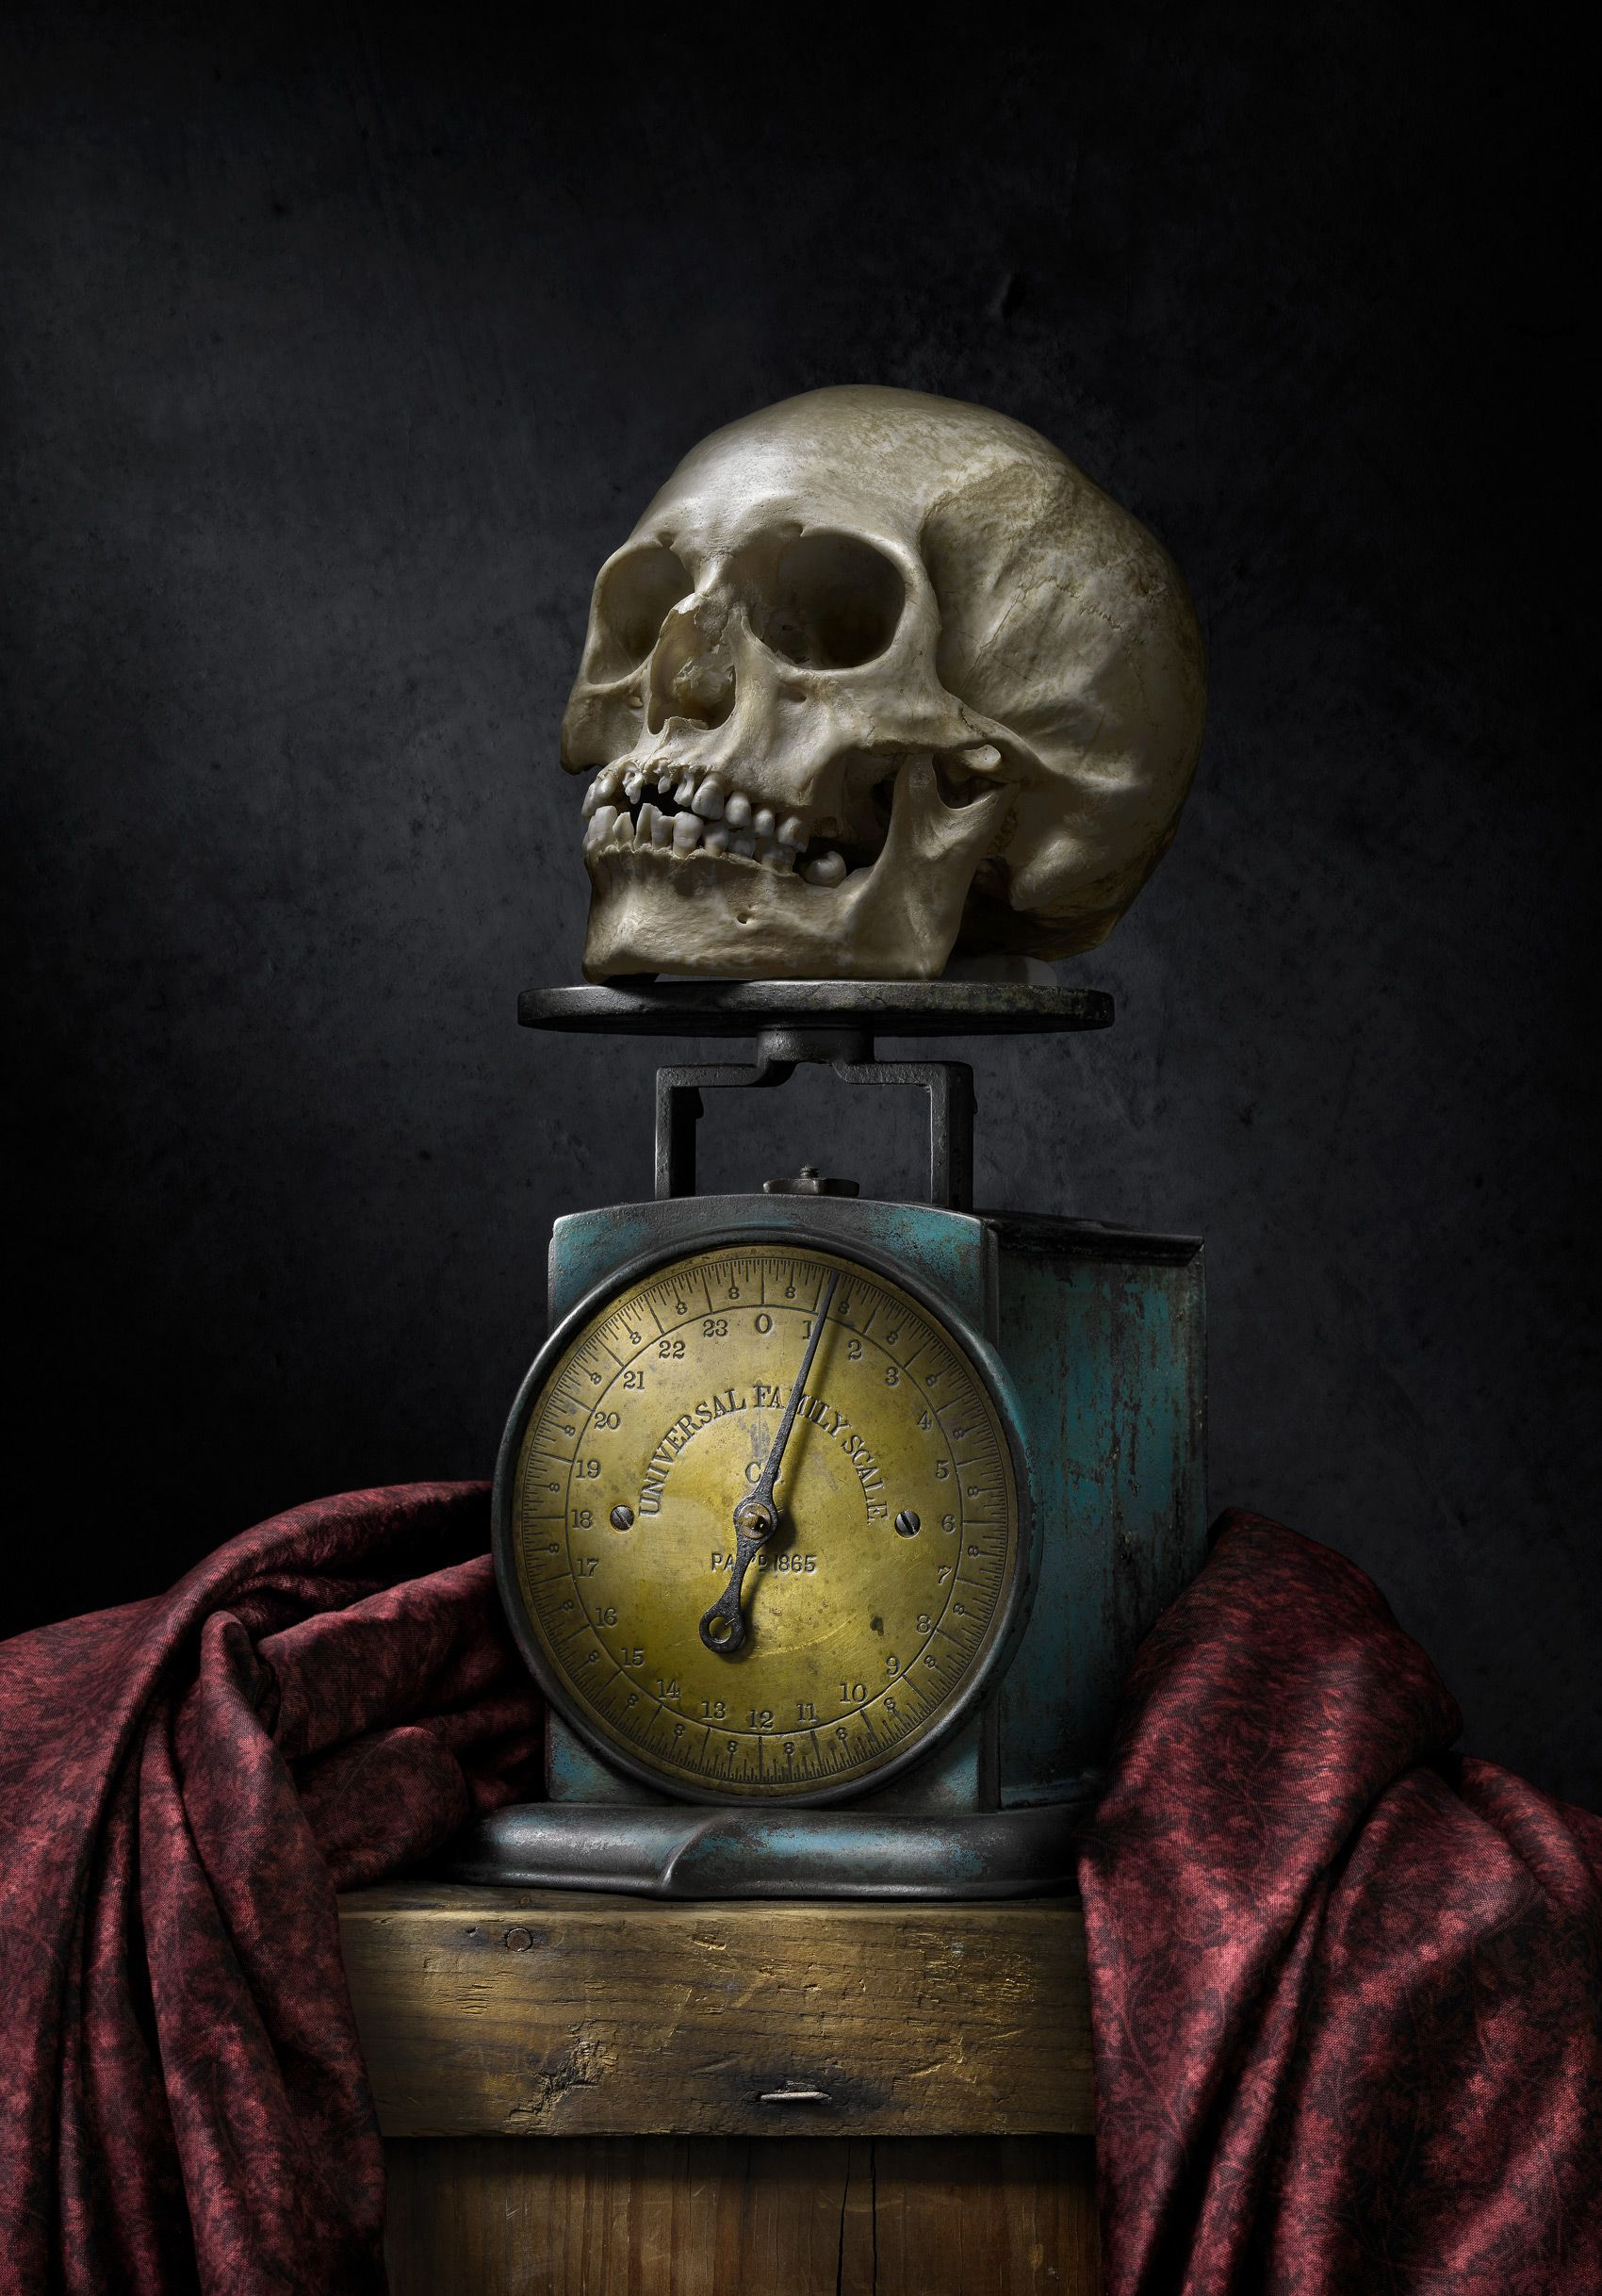 Still Life with Blue Scale and Skull by Harold Ross